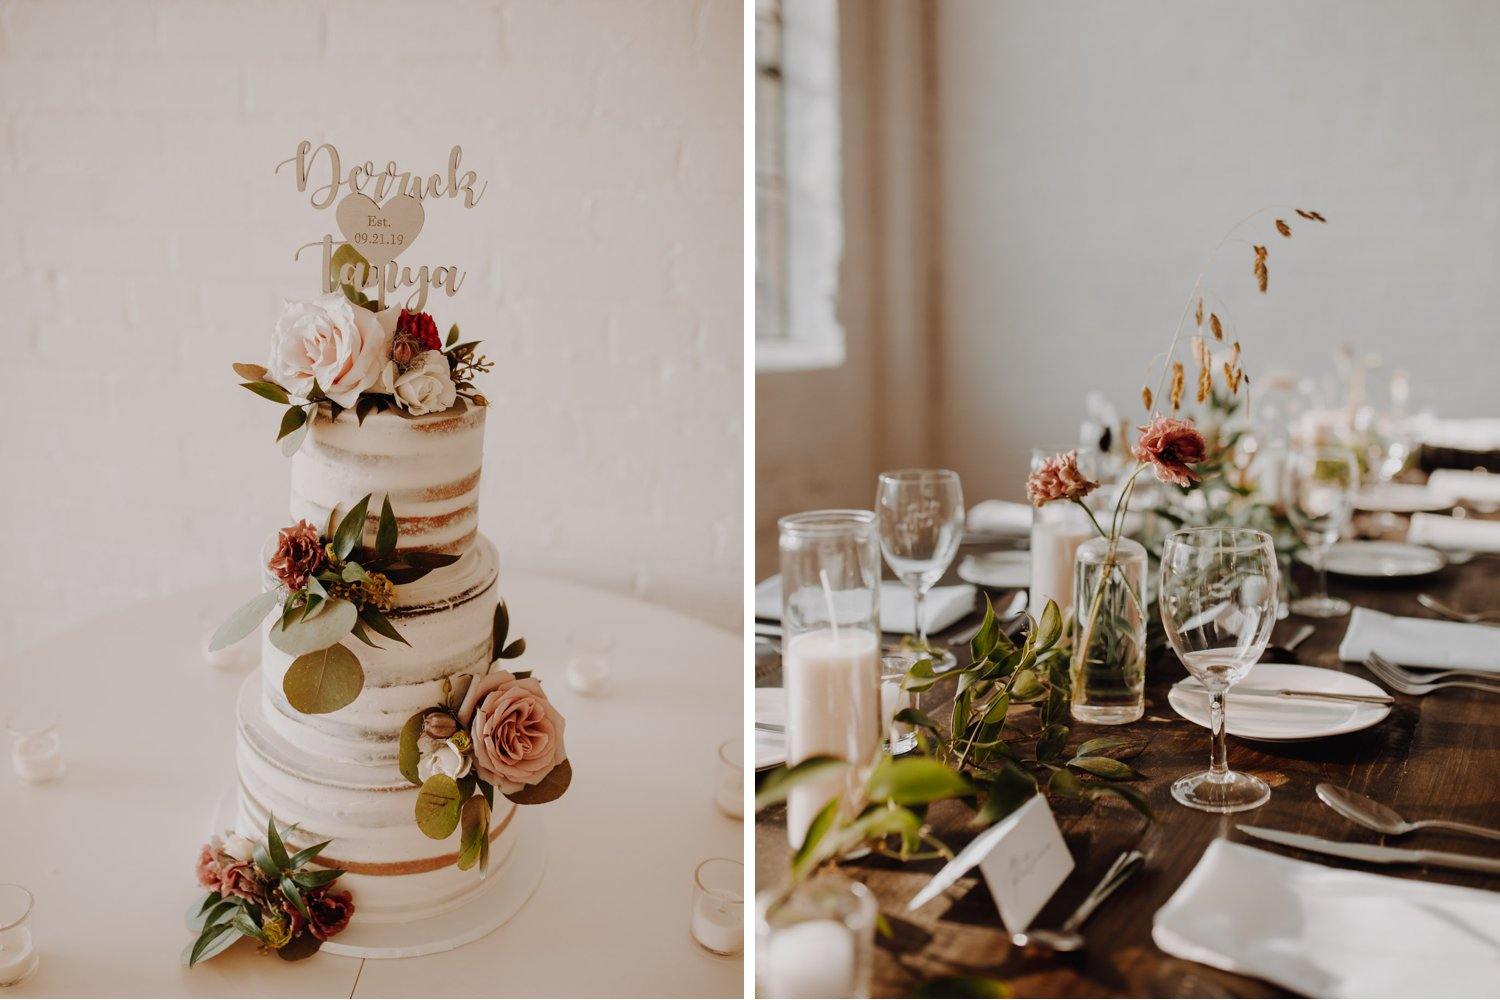 District 28 Wedding Toronto - cake and table details